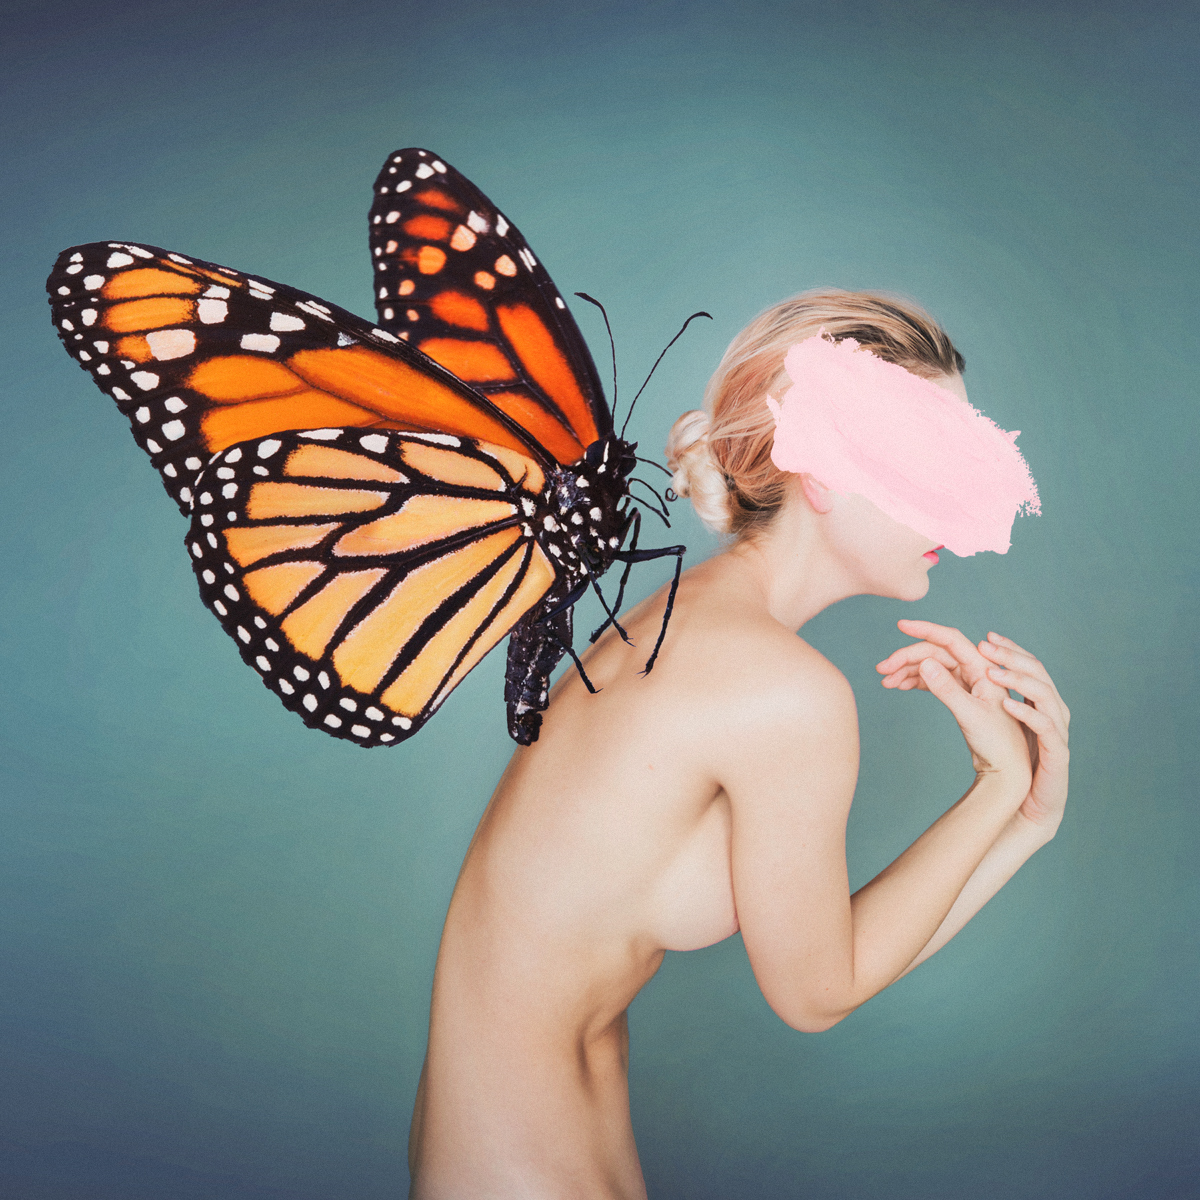 nude female with large orange  monarch butterfly on her back and a pink paint smudge across her face